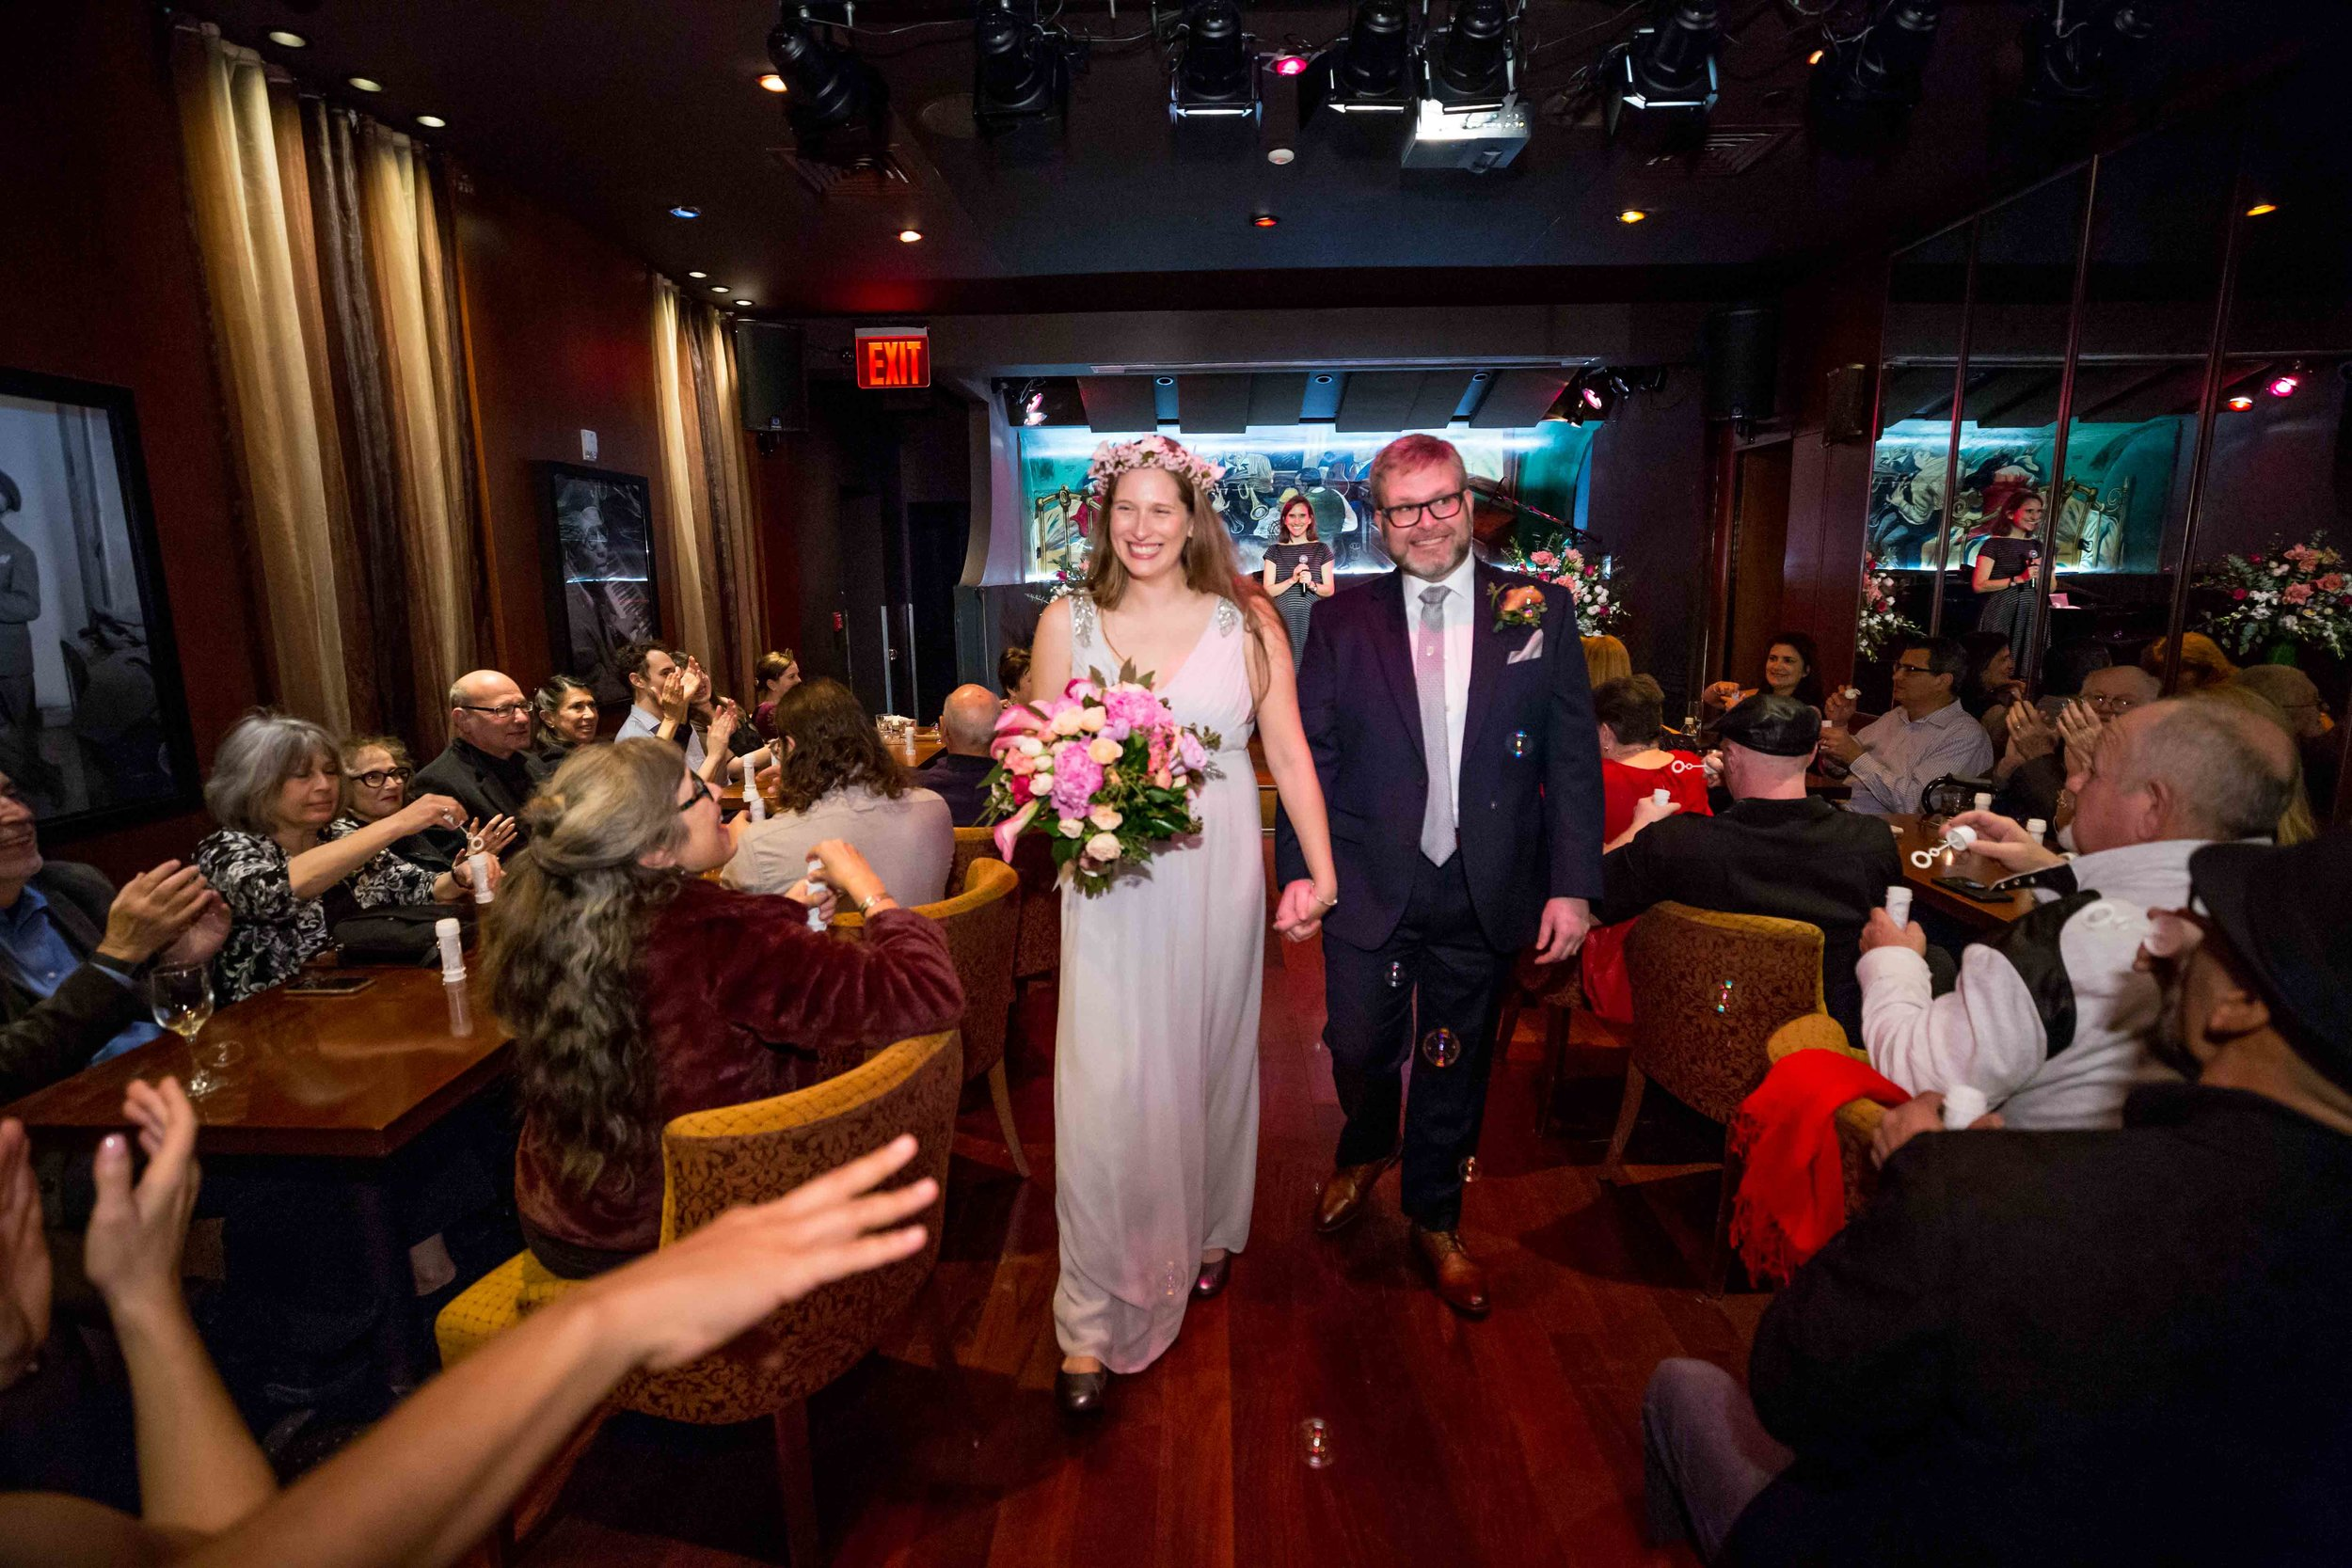 Minton's Playhouse Wedding Cecil Steakhouse Harlem NYC Photographer-15.jpg